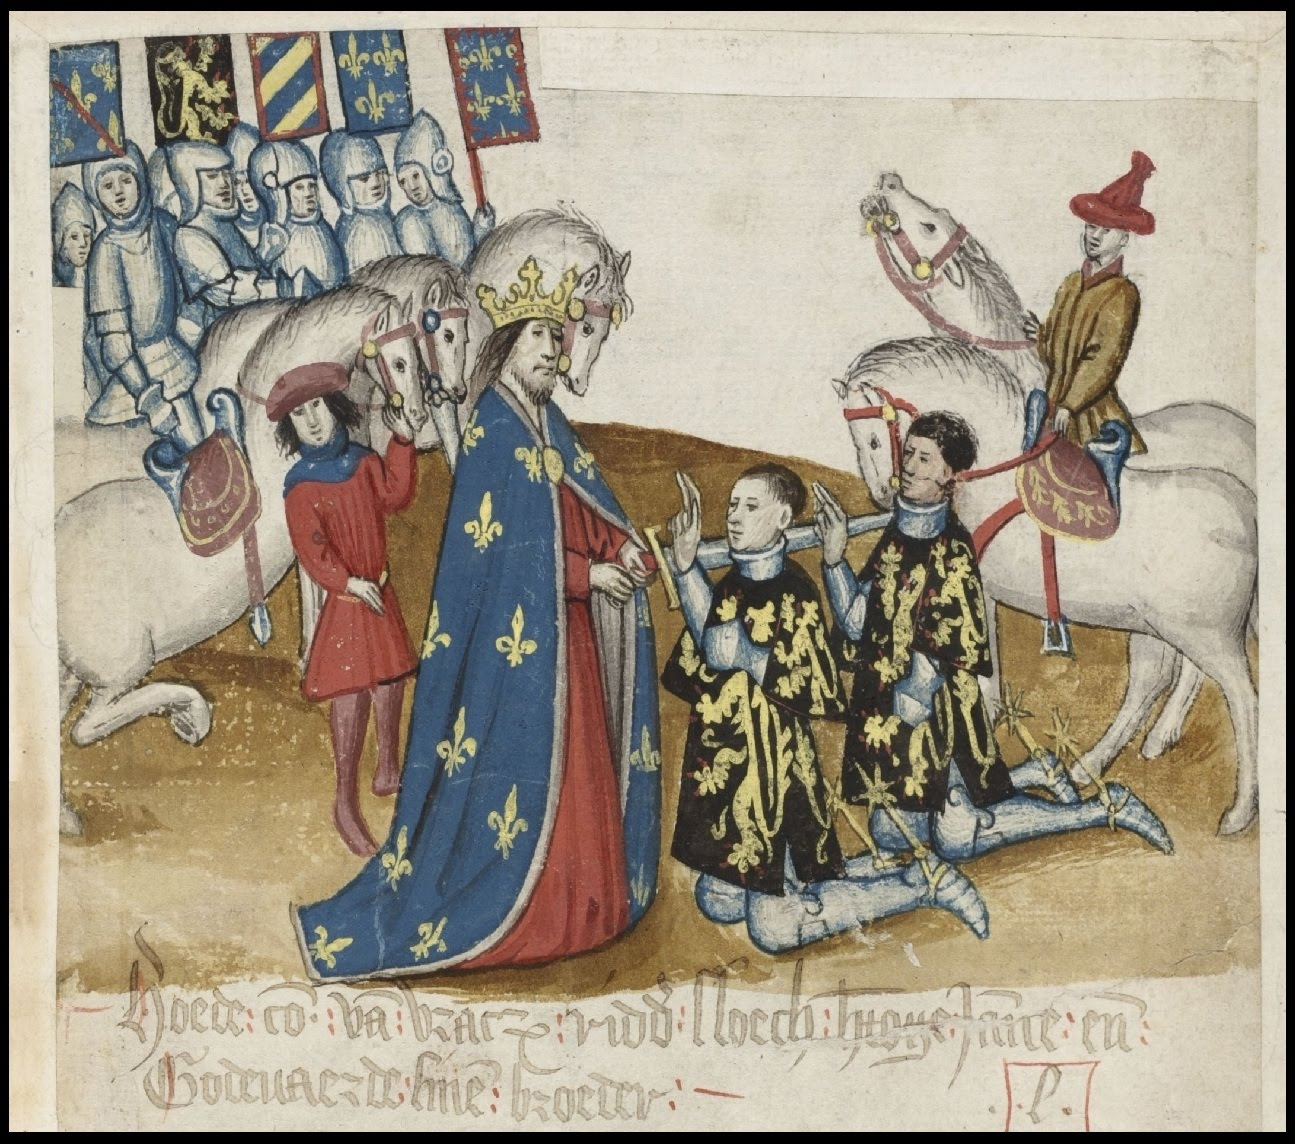 medieval scene of nobleman dubbing knights